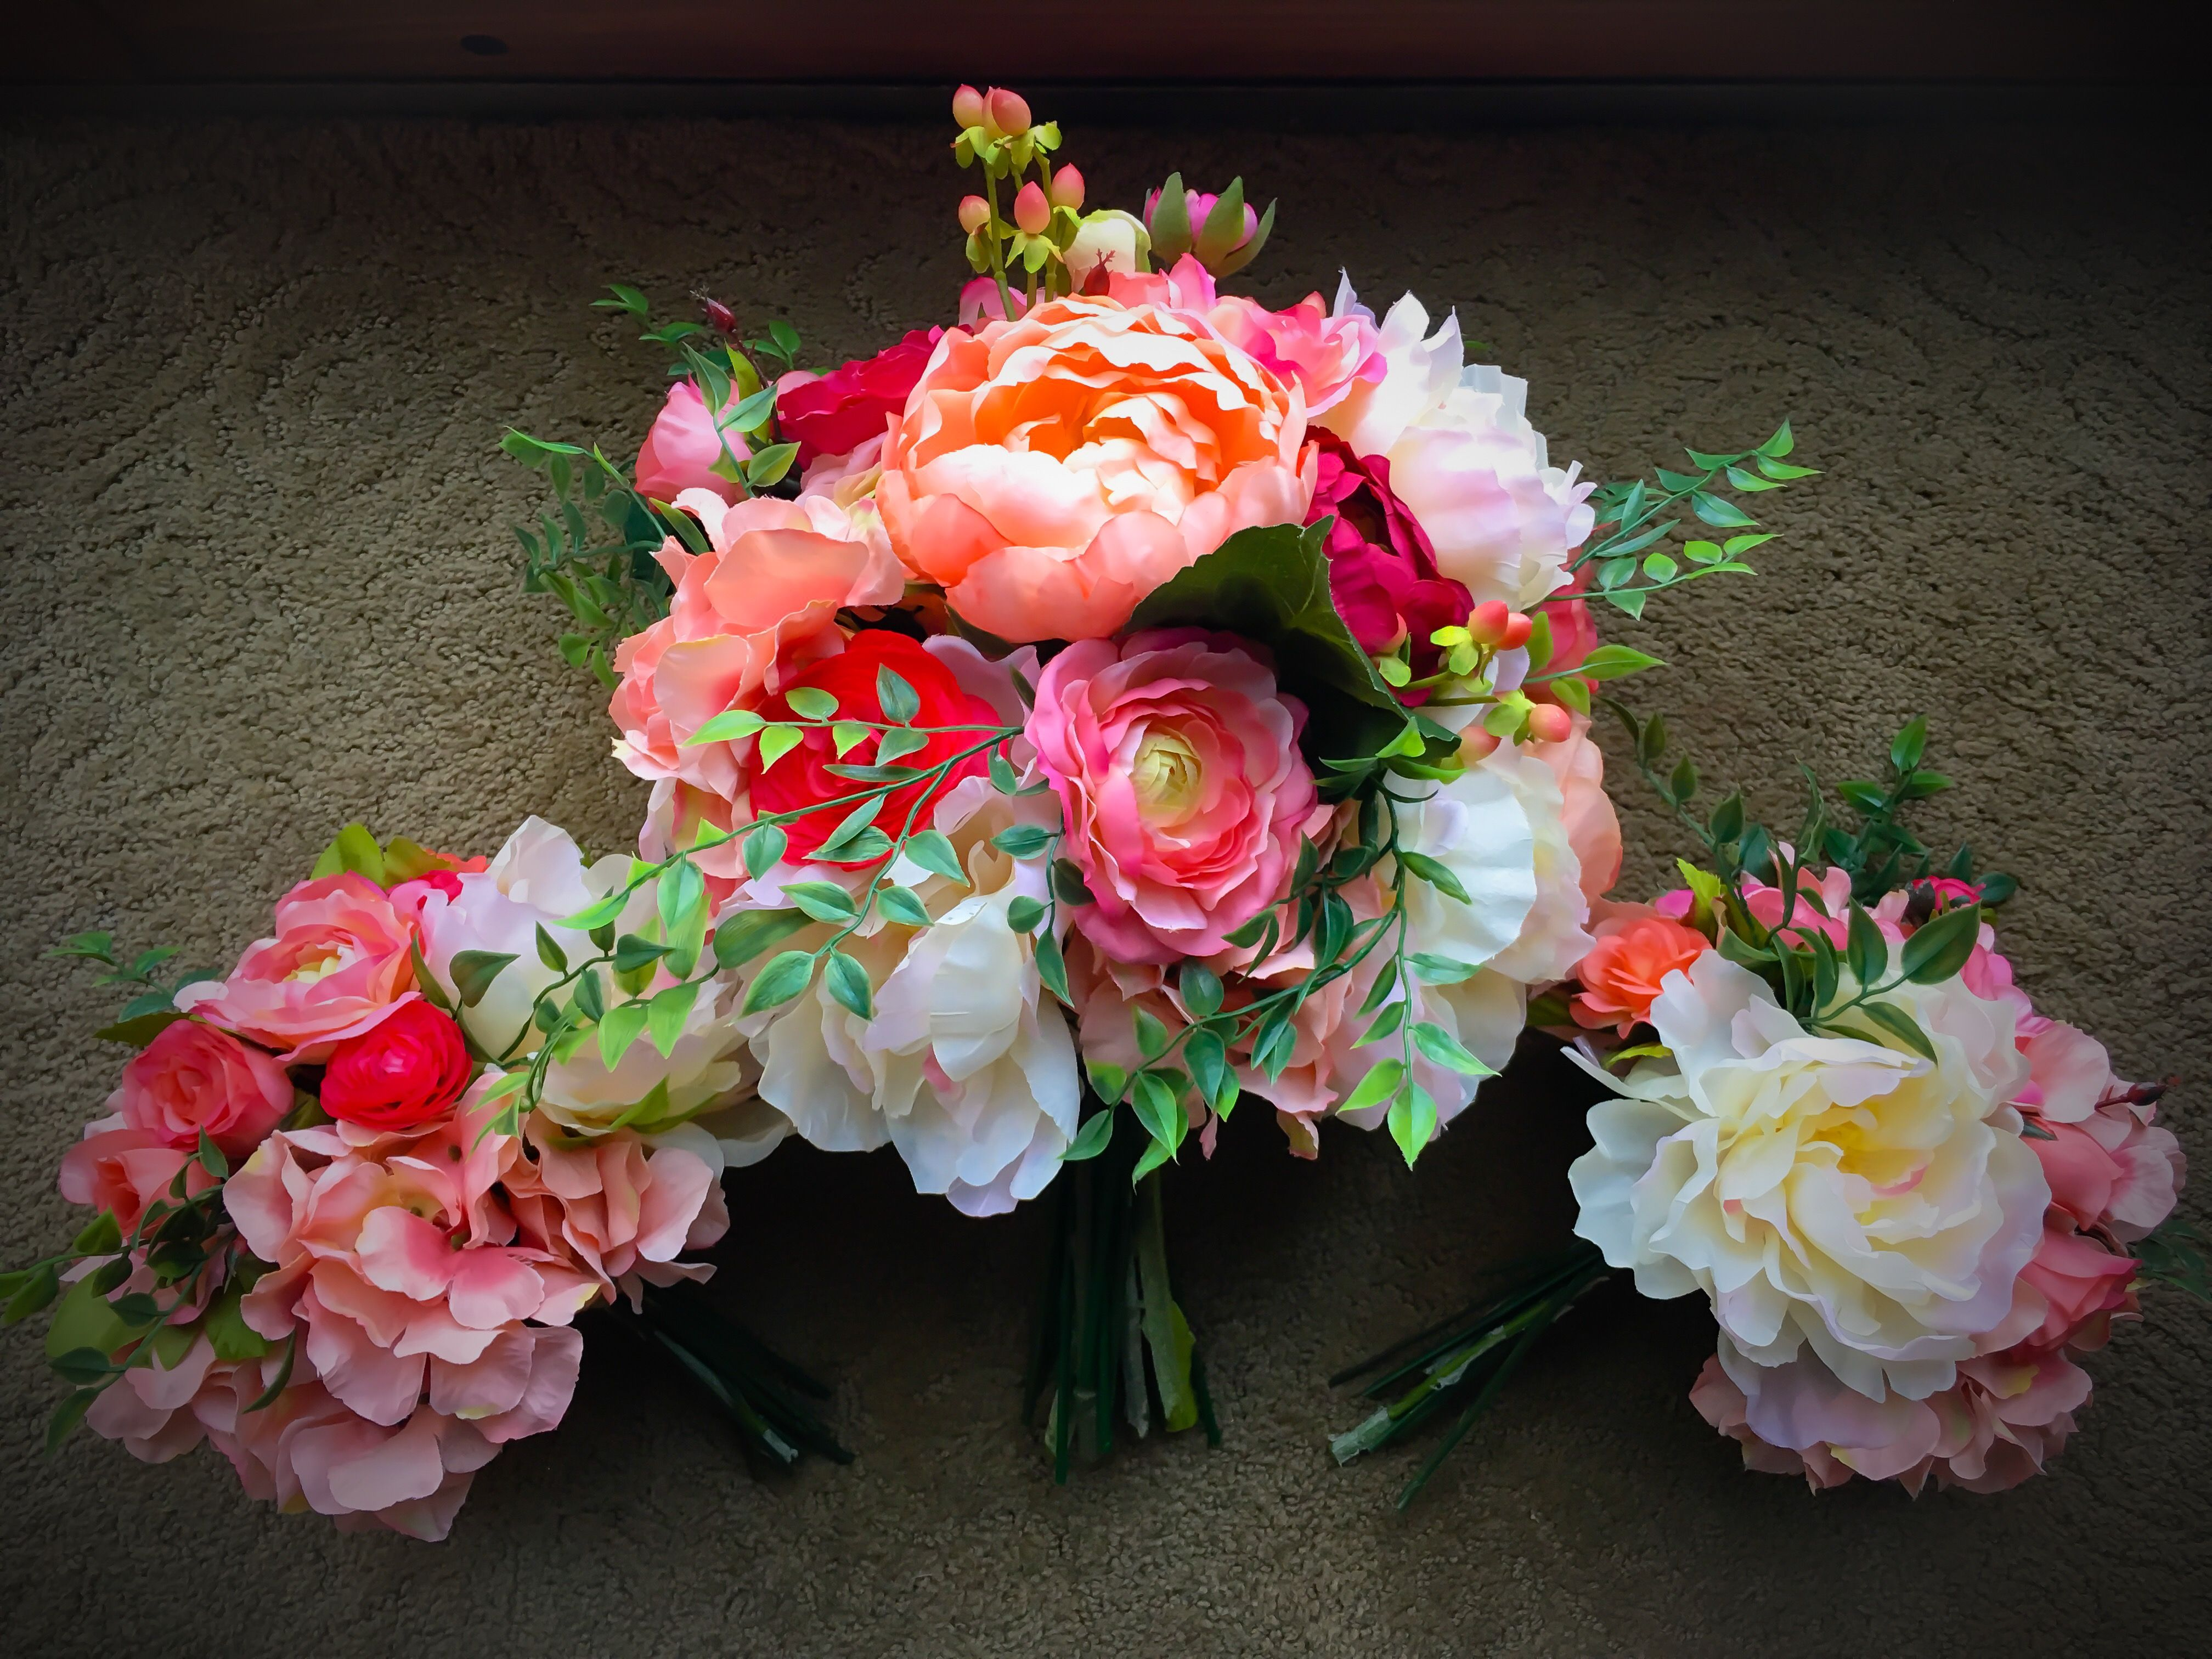 Custom Wedding Flowers - Bouquets, Corsages, Crowns and Boutonnieres ...